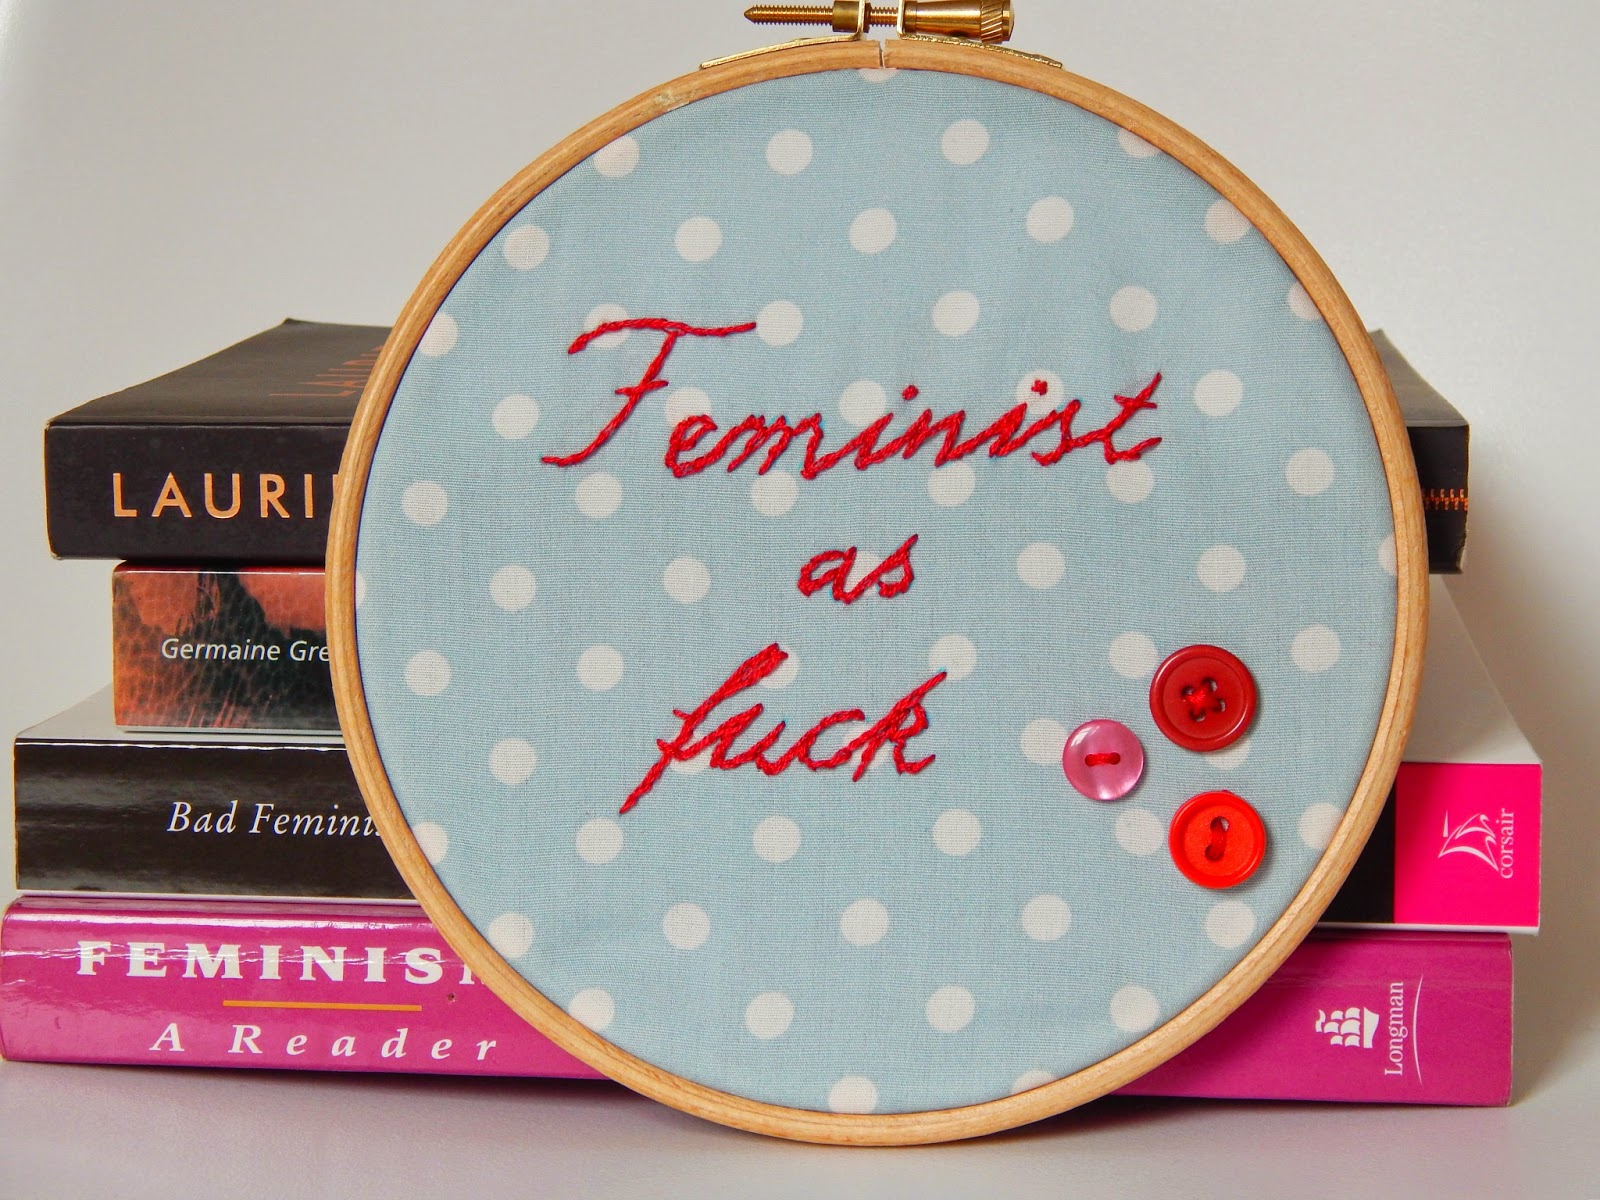 Words that can only be your own made slogan embroidery hoop